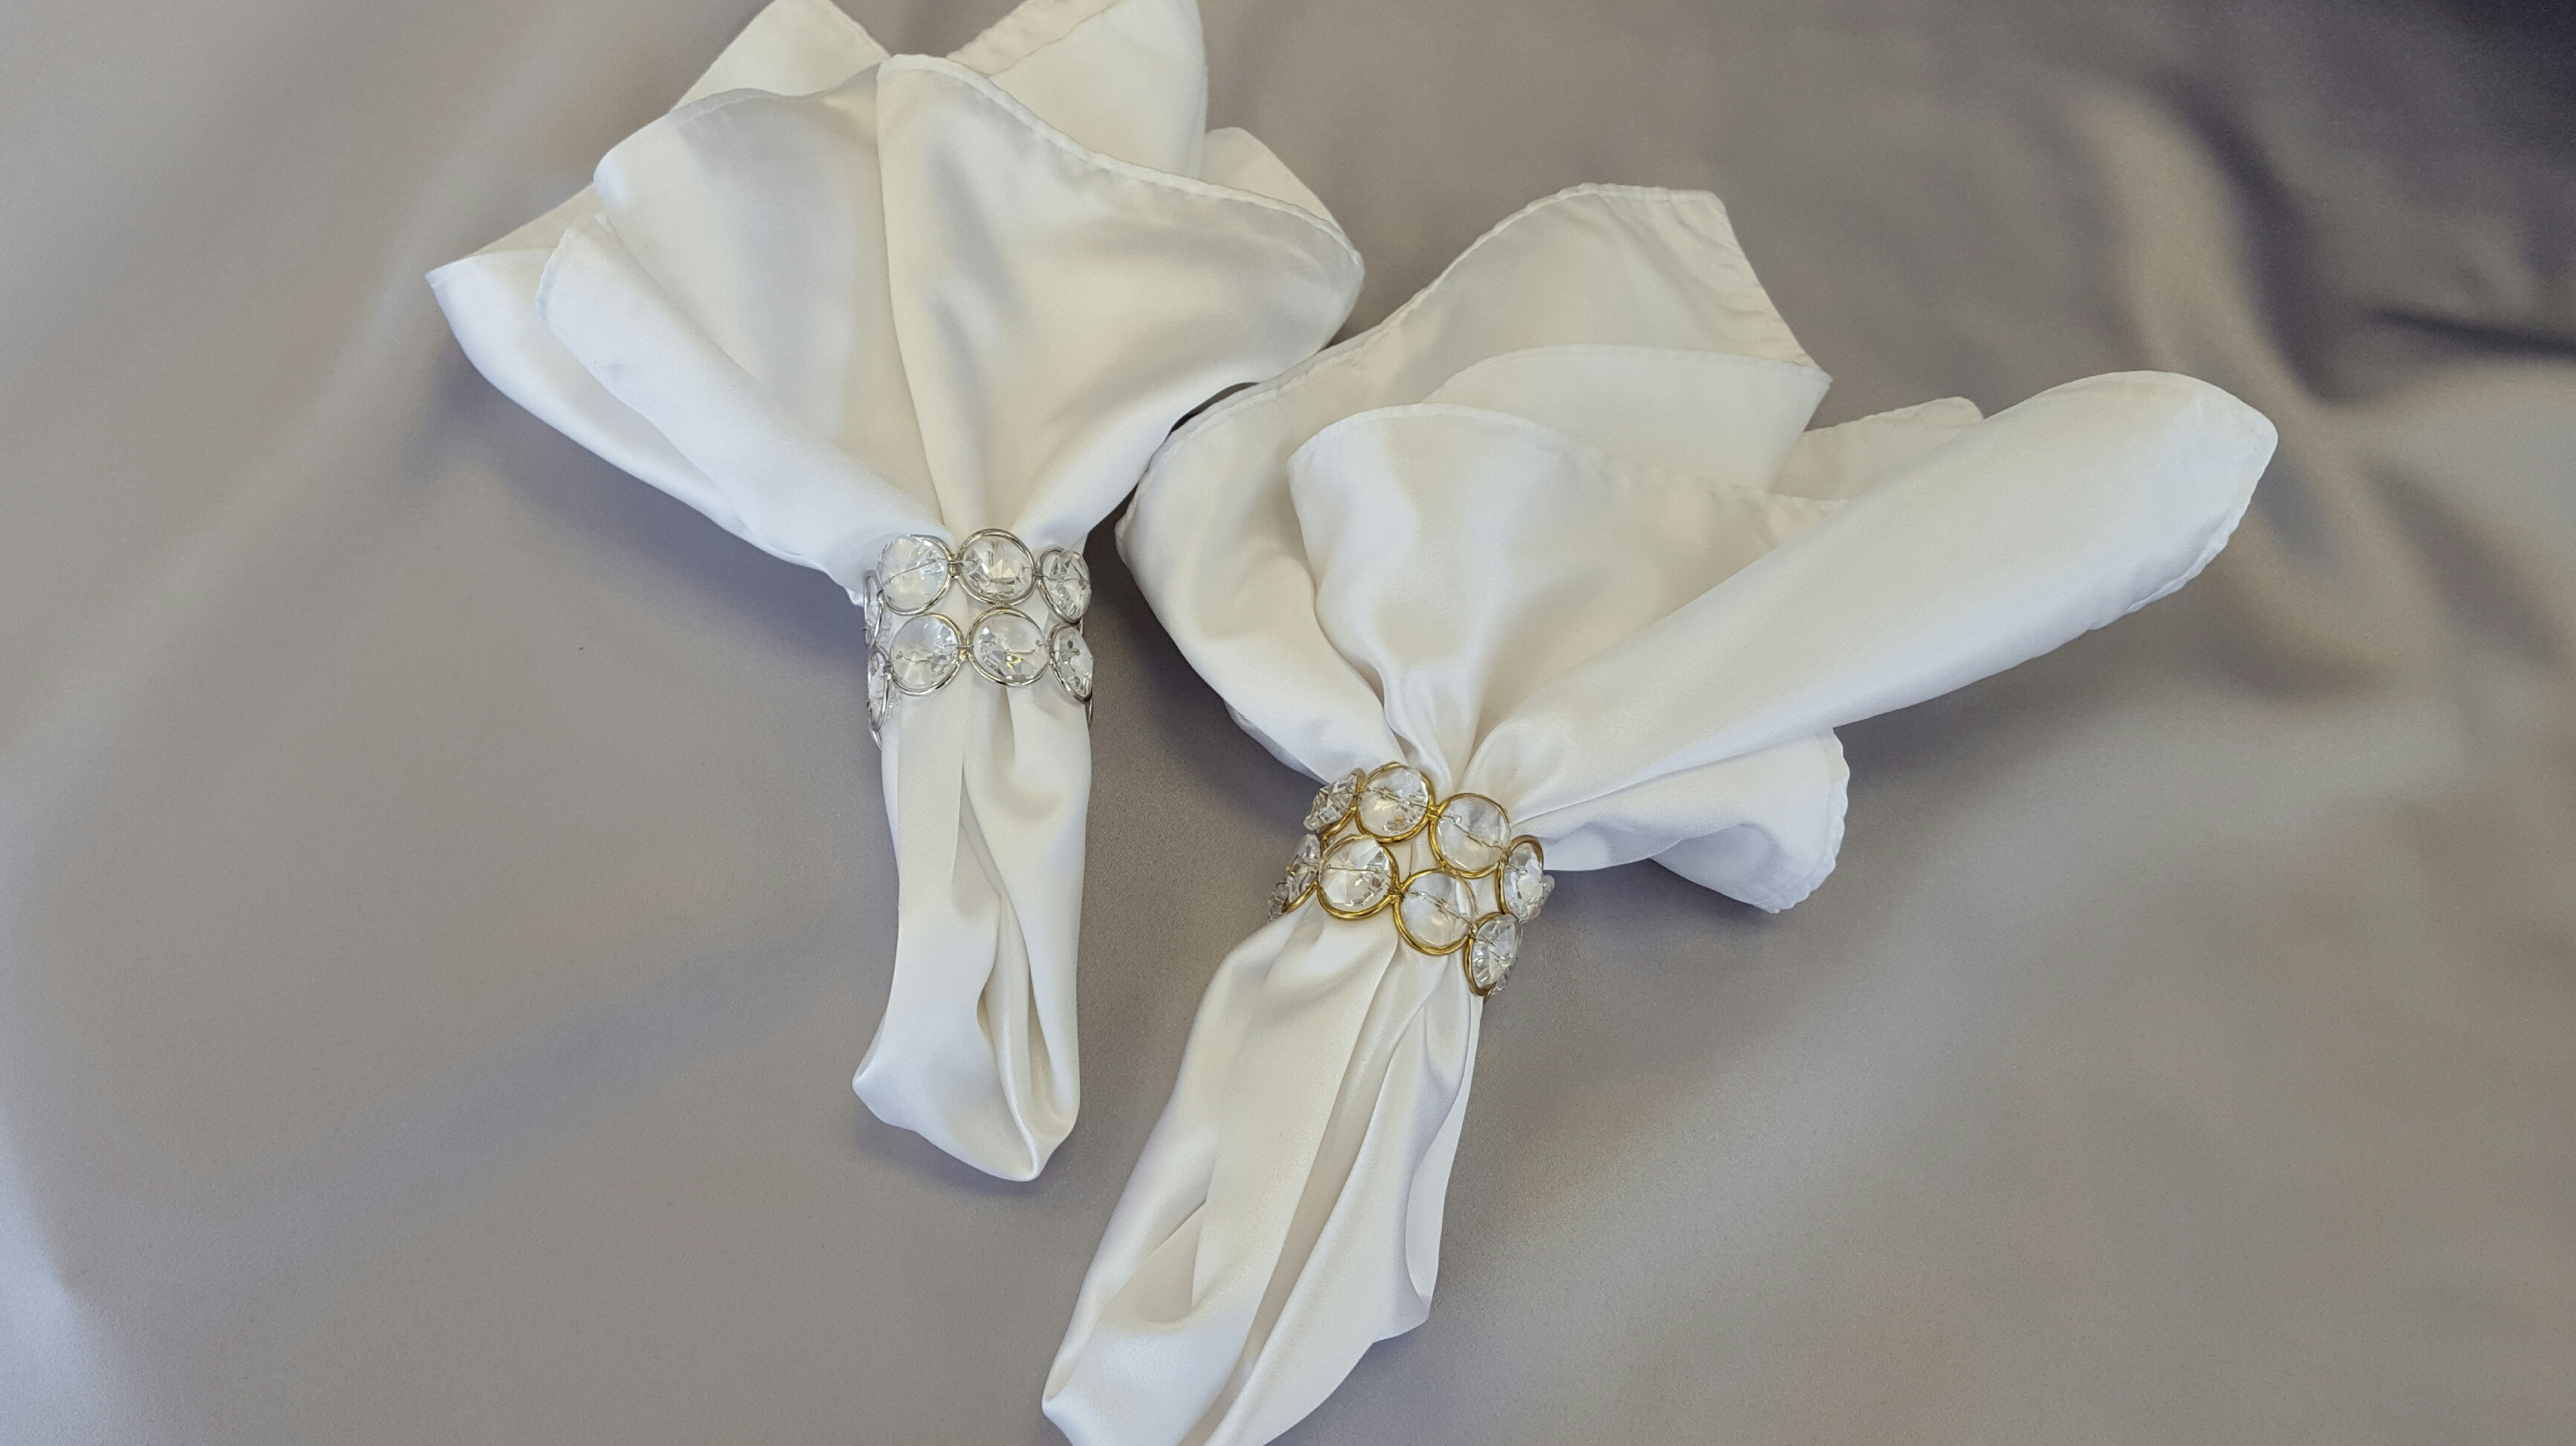 Crystal Gold Or Silver Napkin Rings The Finishing Touch